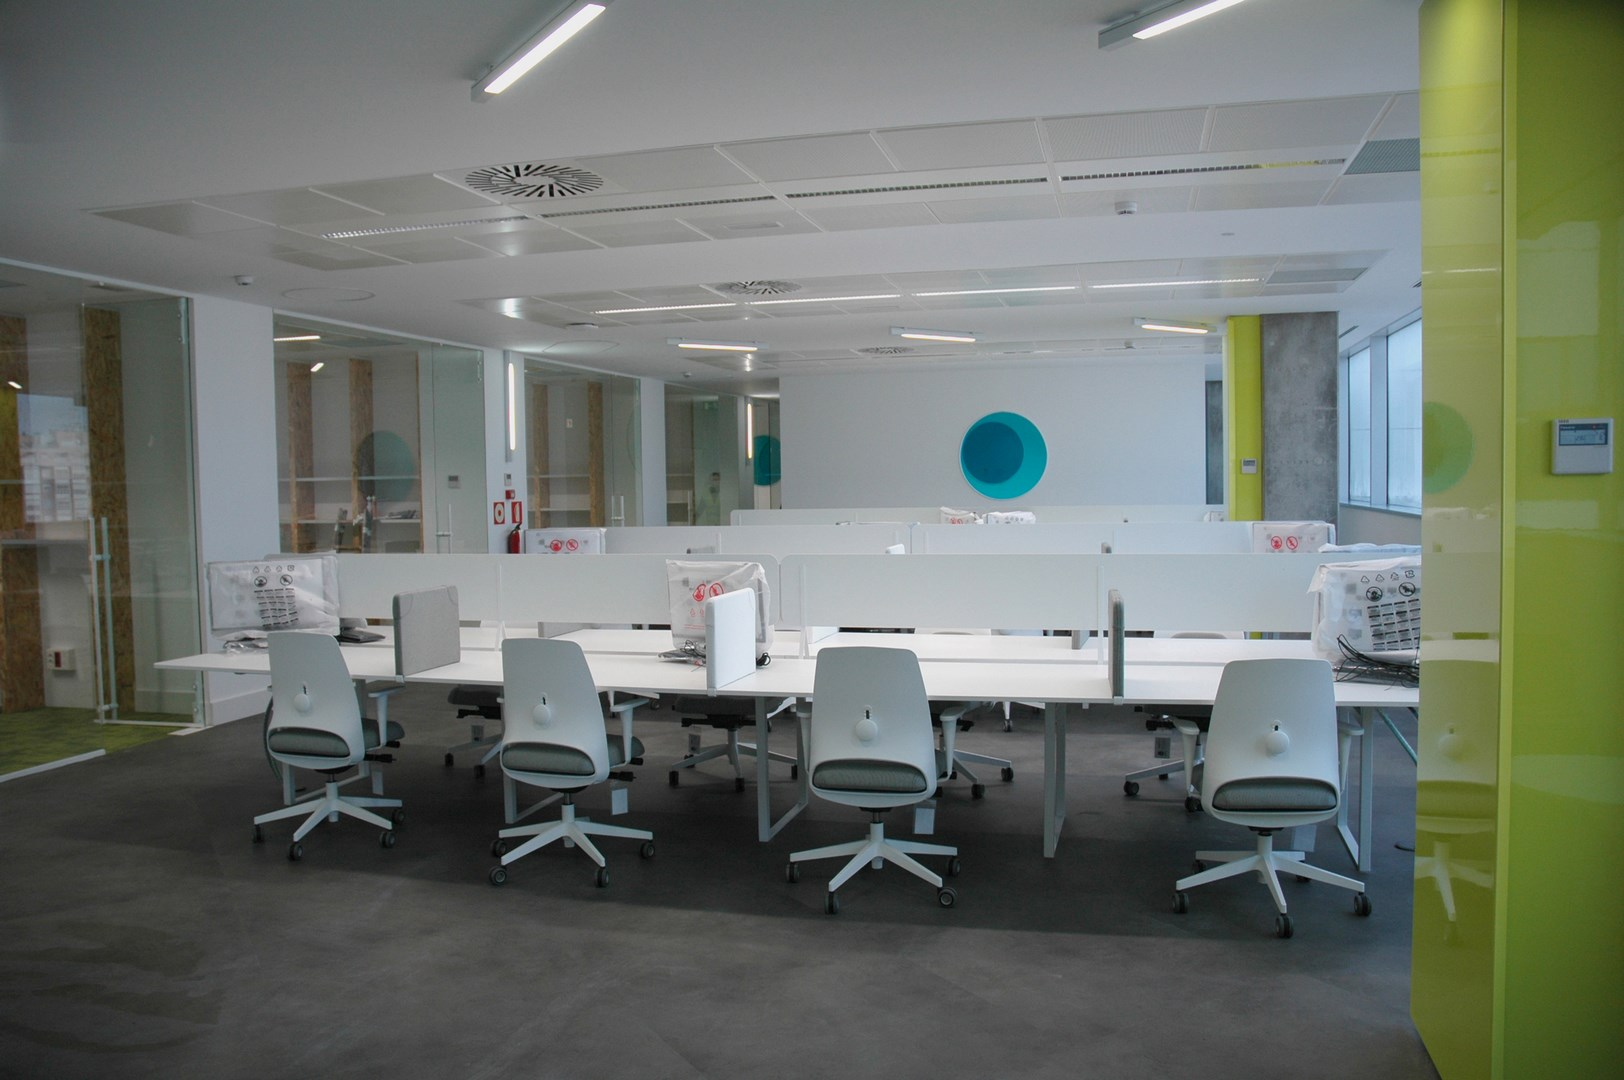 Offices, open-space furnishings